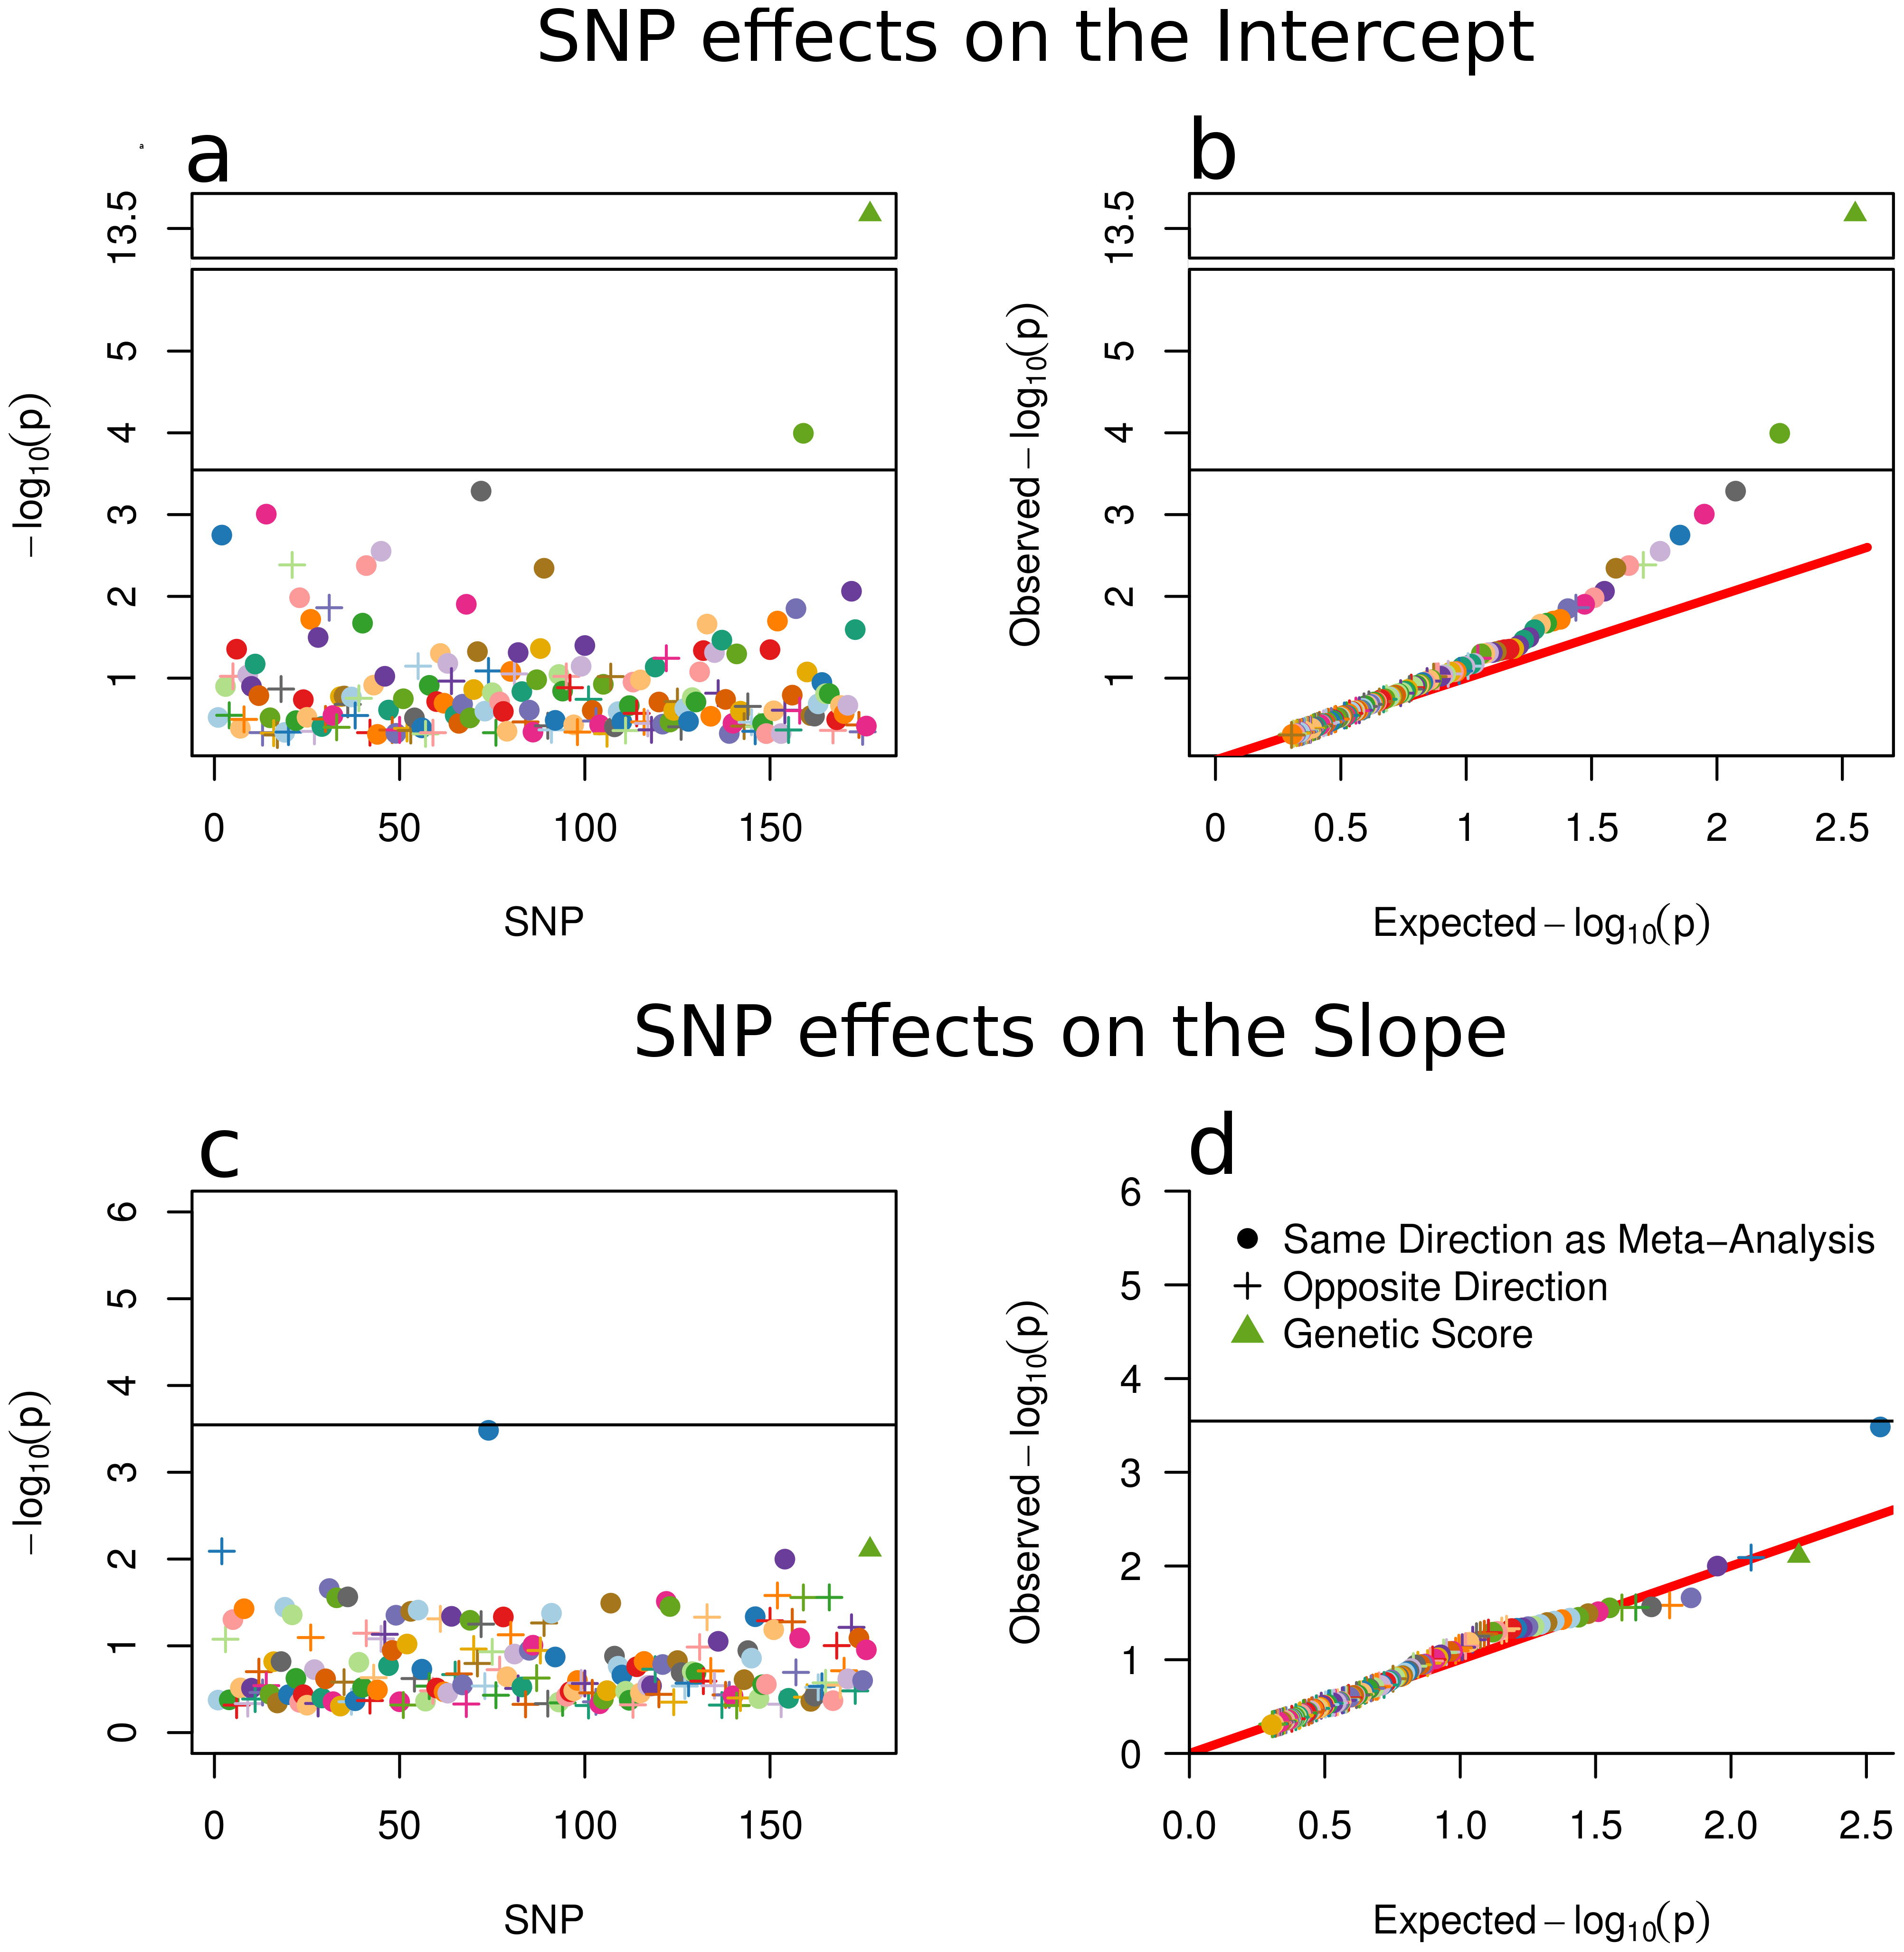 SNP and Score Effects on the Growth Model Intercept and Slope.